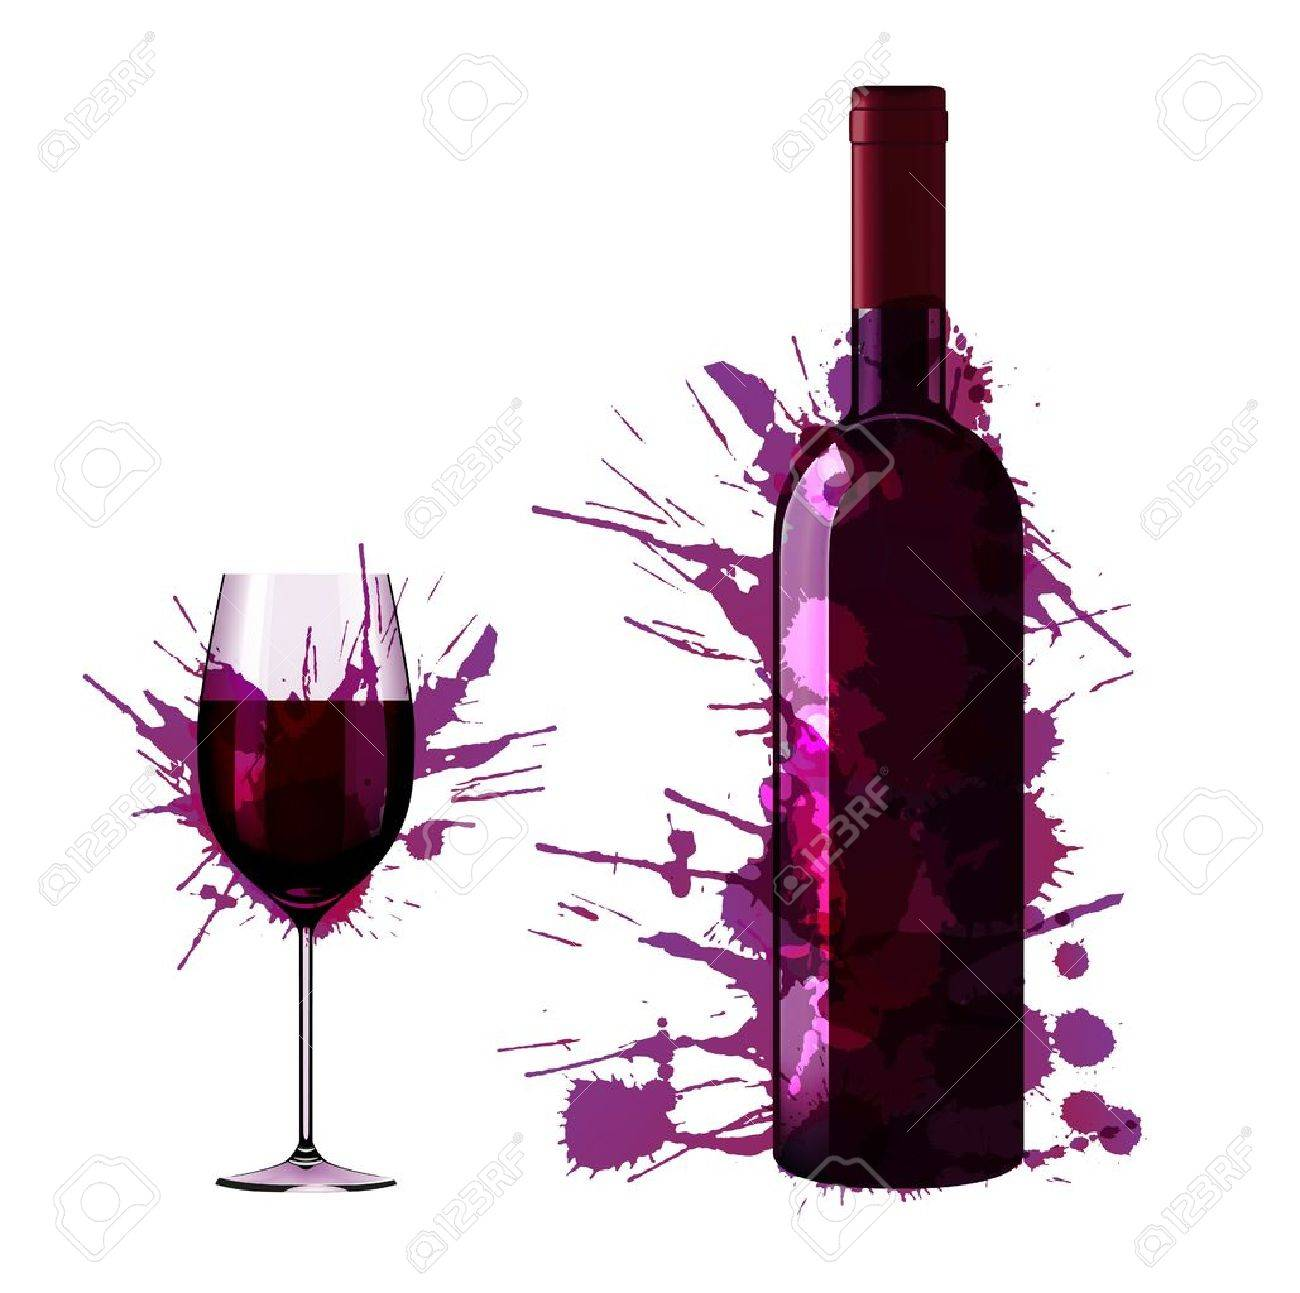 Bottle and glass of wine made of colorful splashes - 21149632